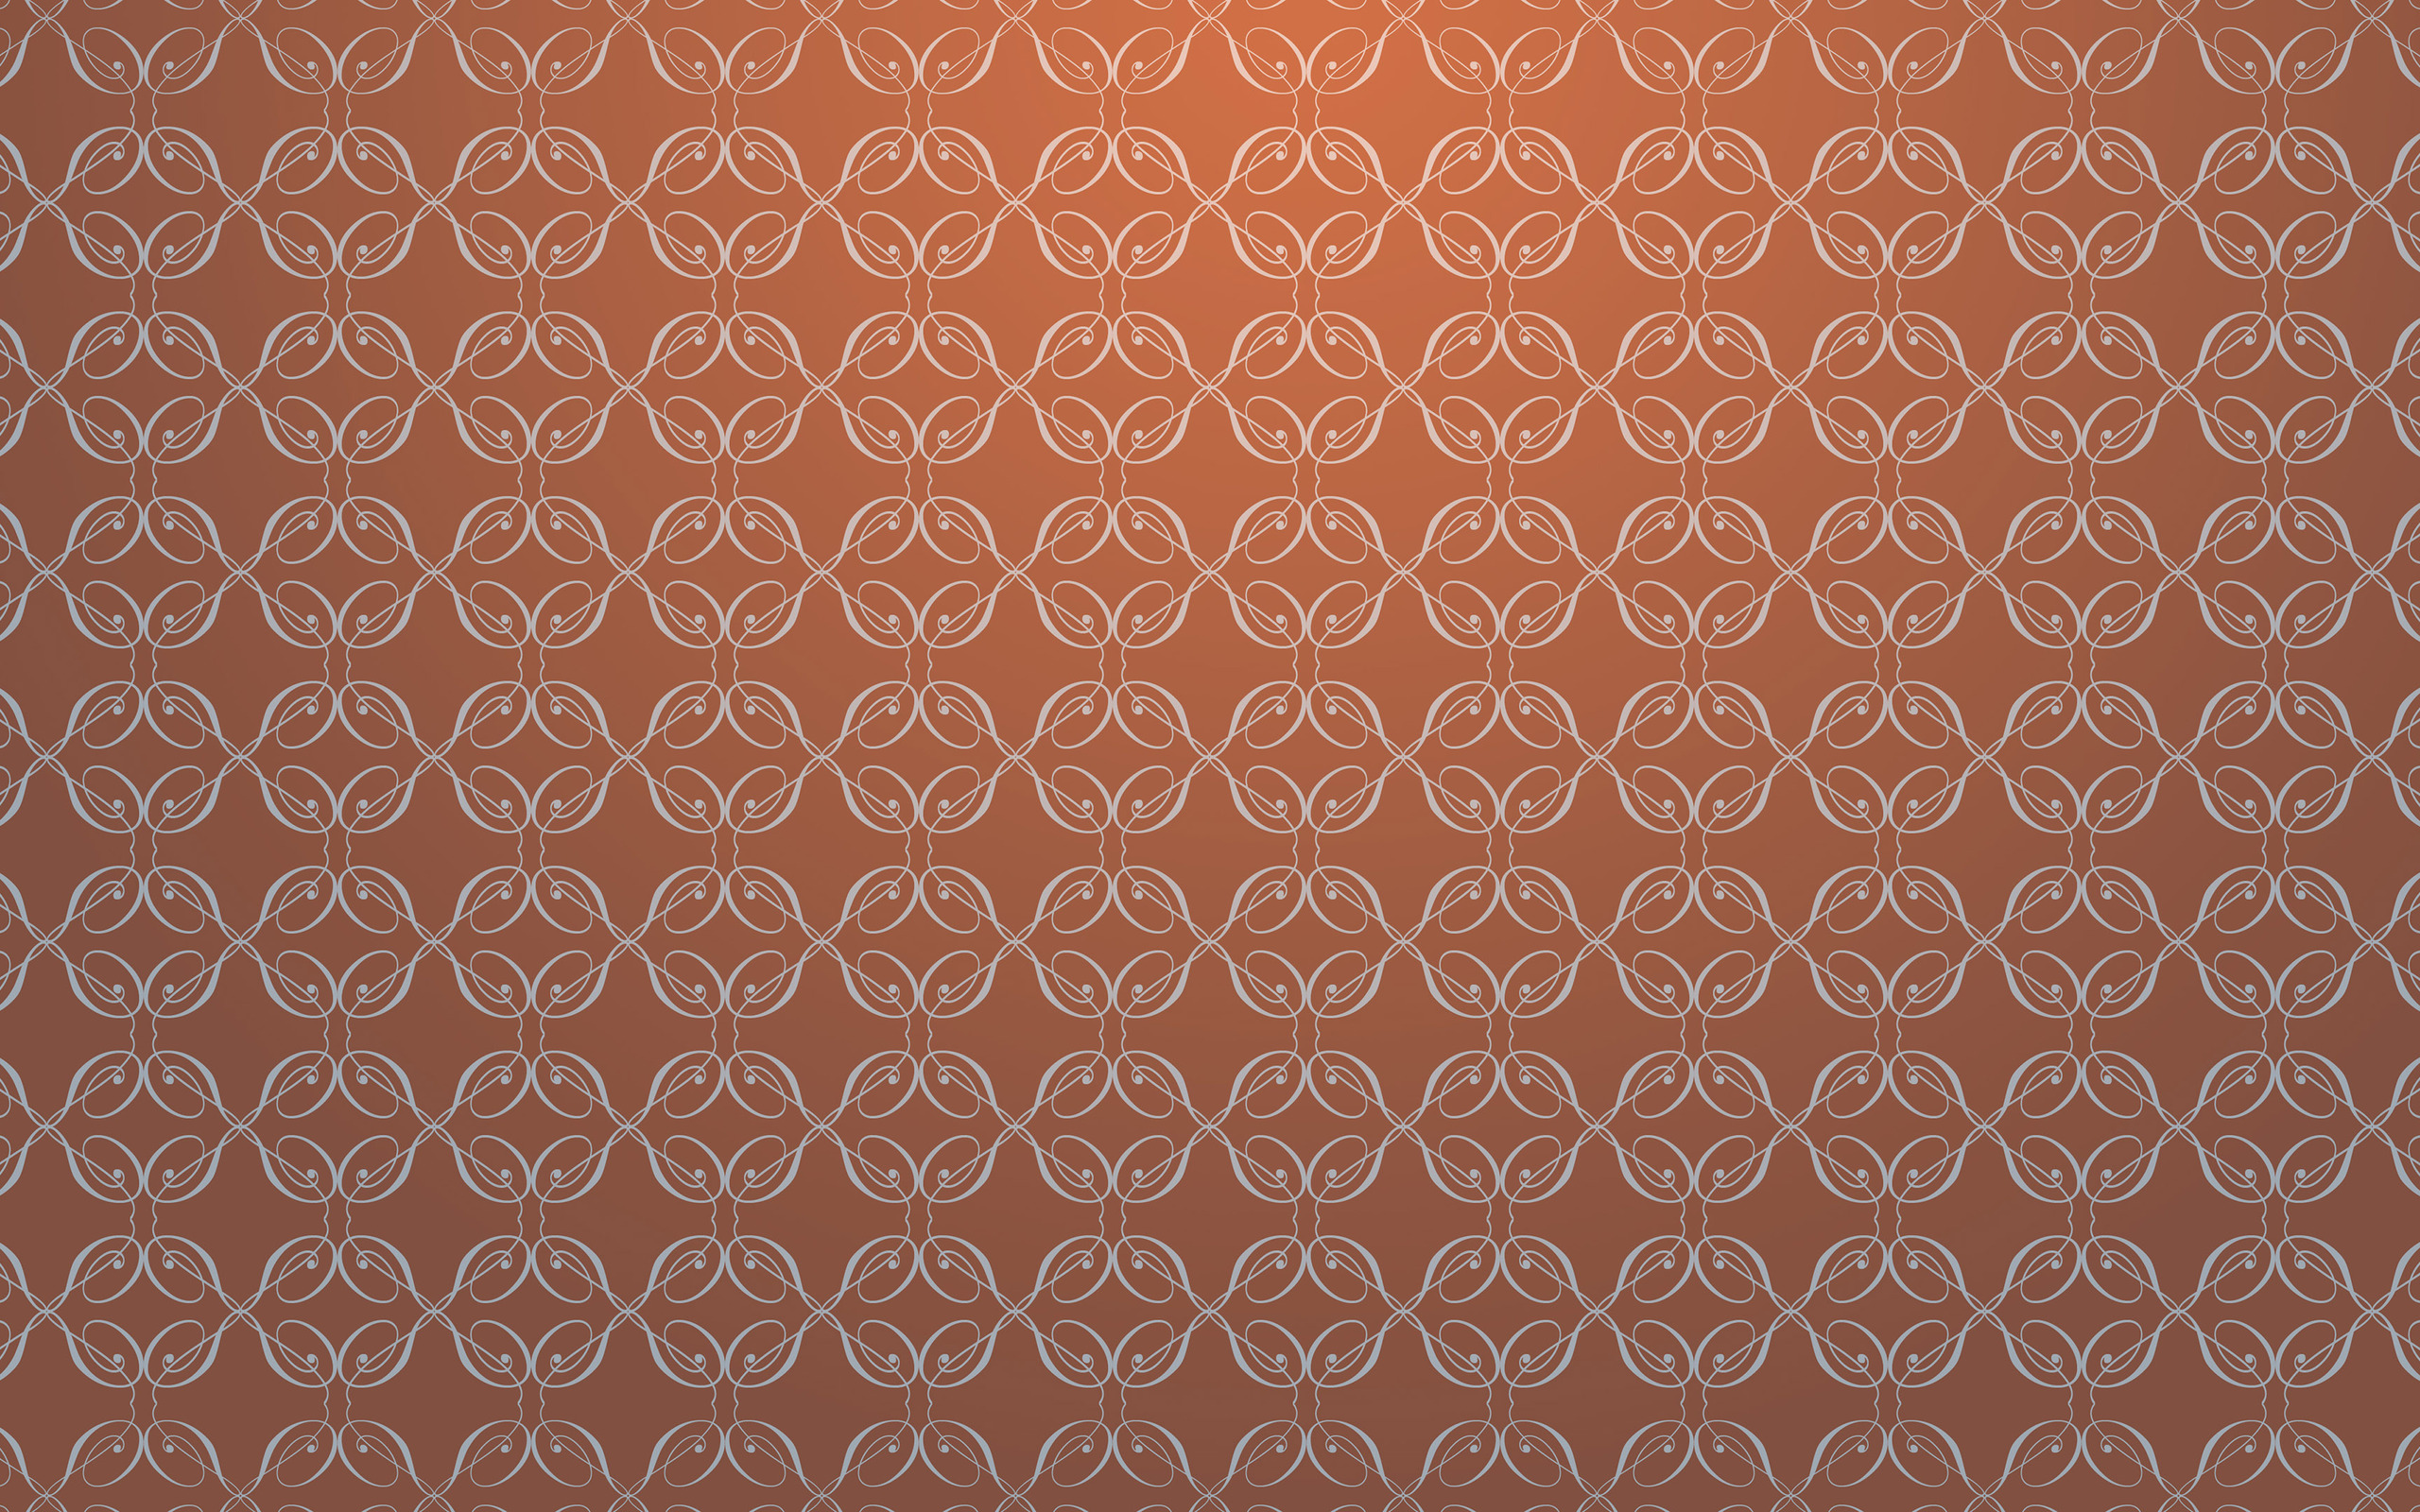 Brown and white patterns Wallpaper 22623 2560x1600